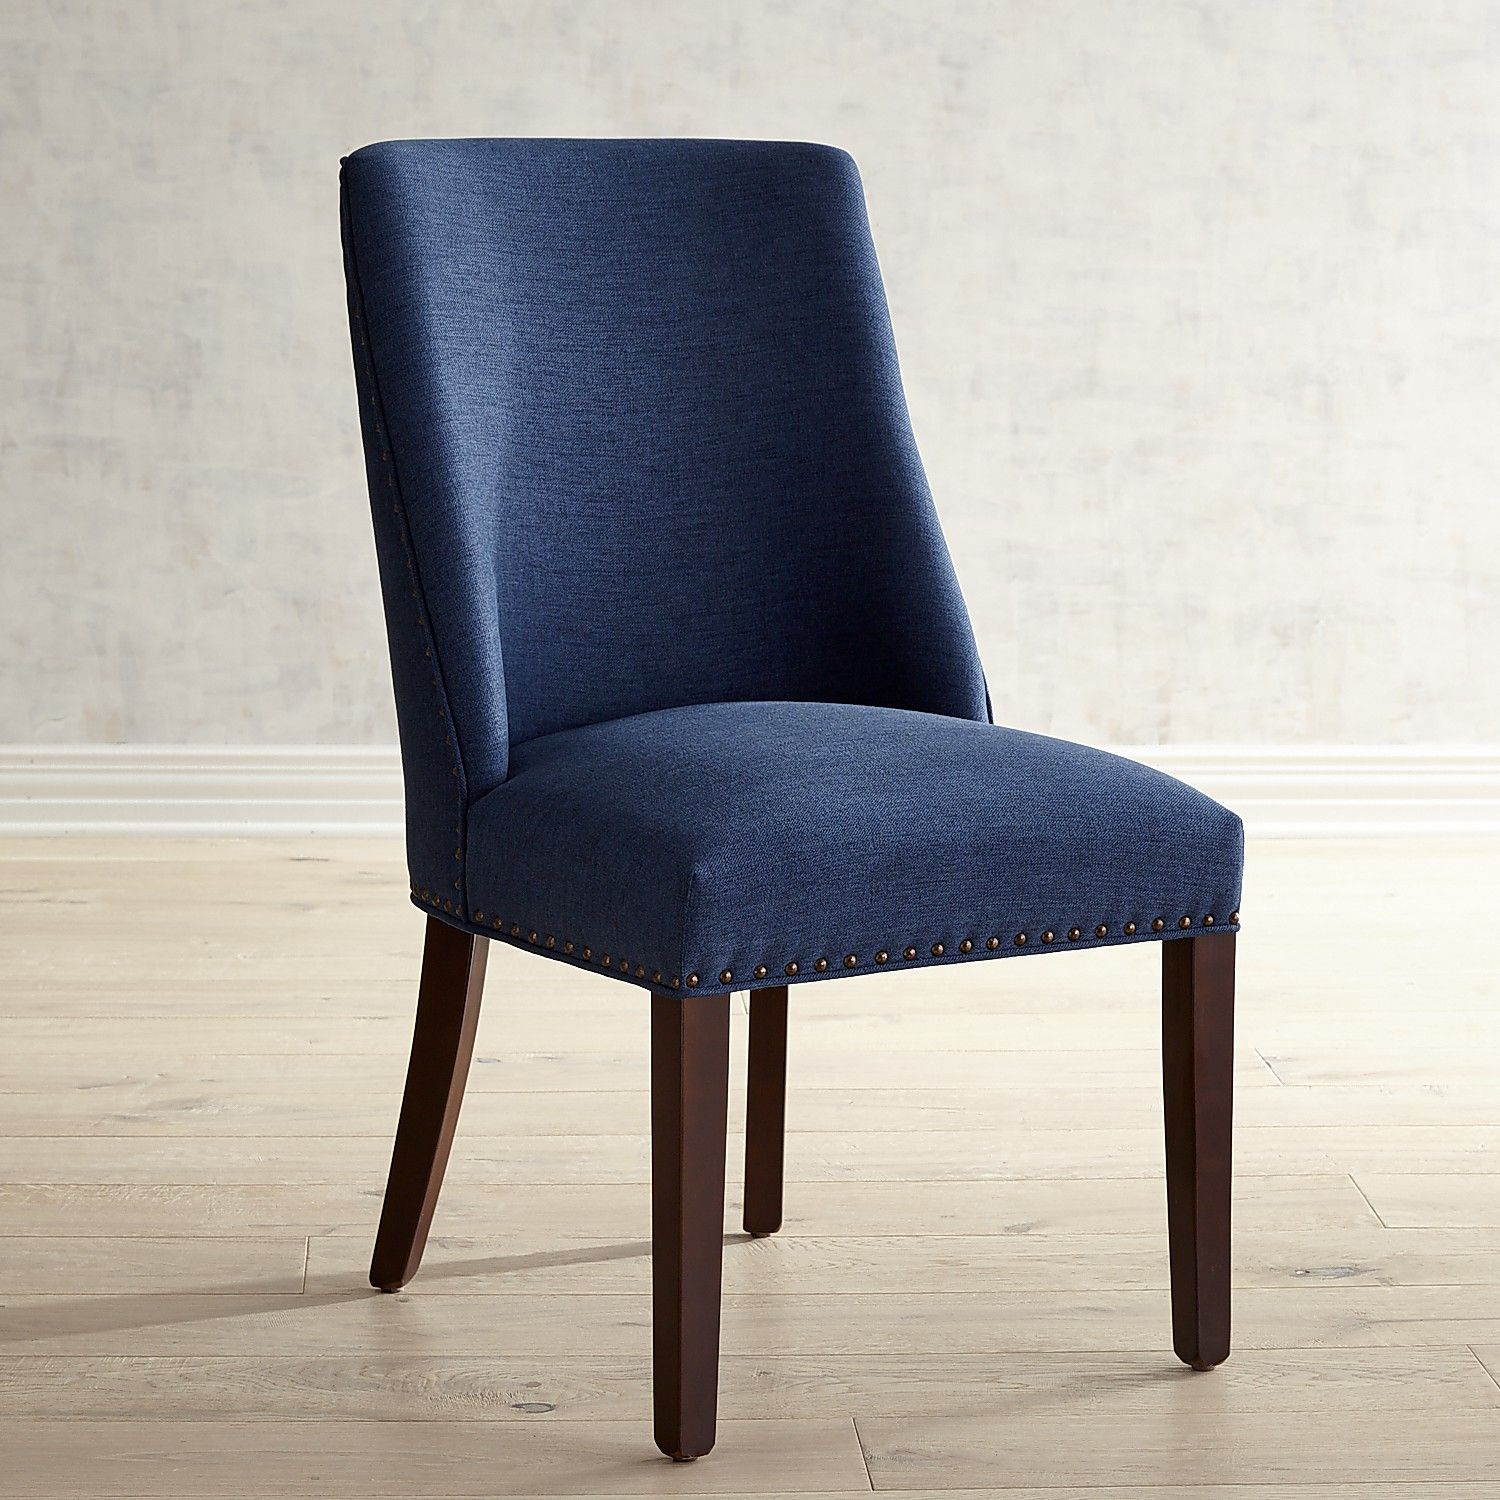 Corinne Pierformance™ Baltic Blue Dining Chair with